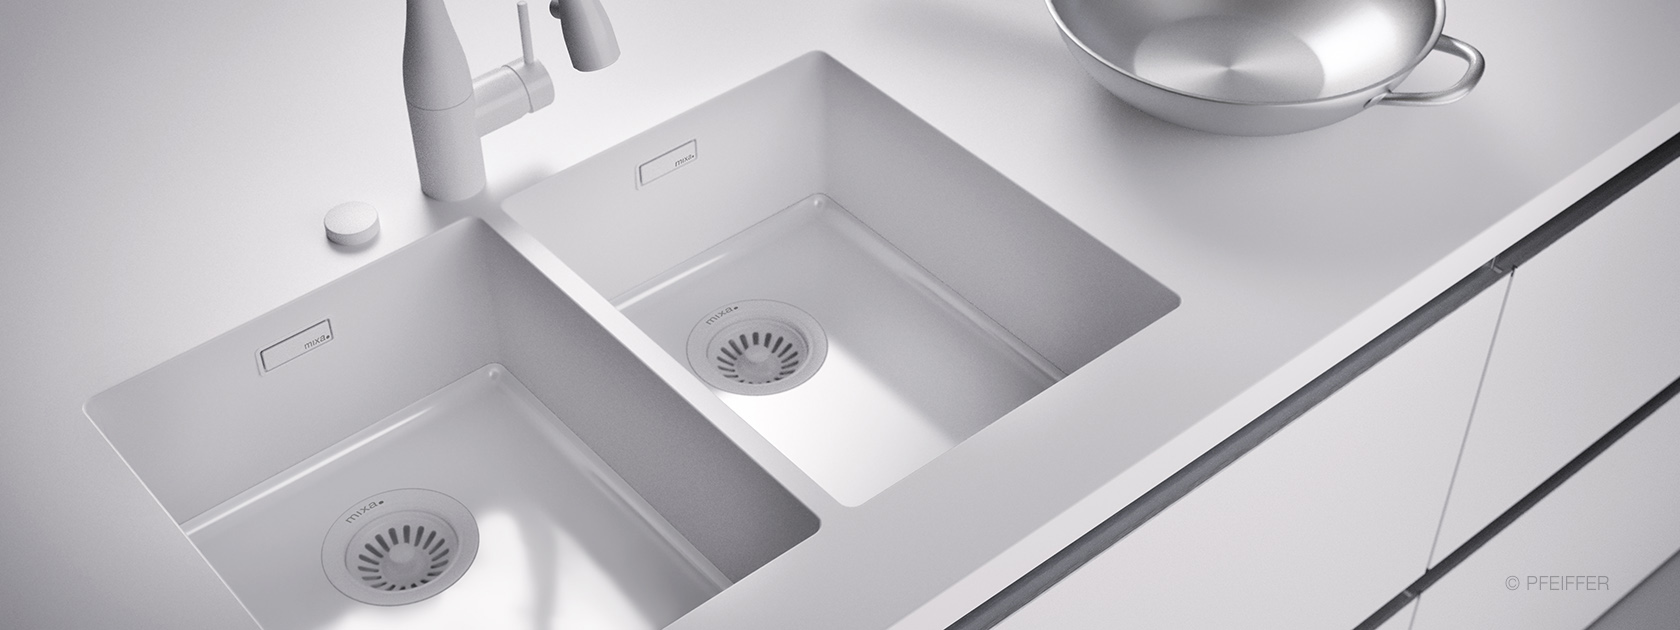 Mixa sinks and Vivari Washbasins.